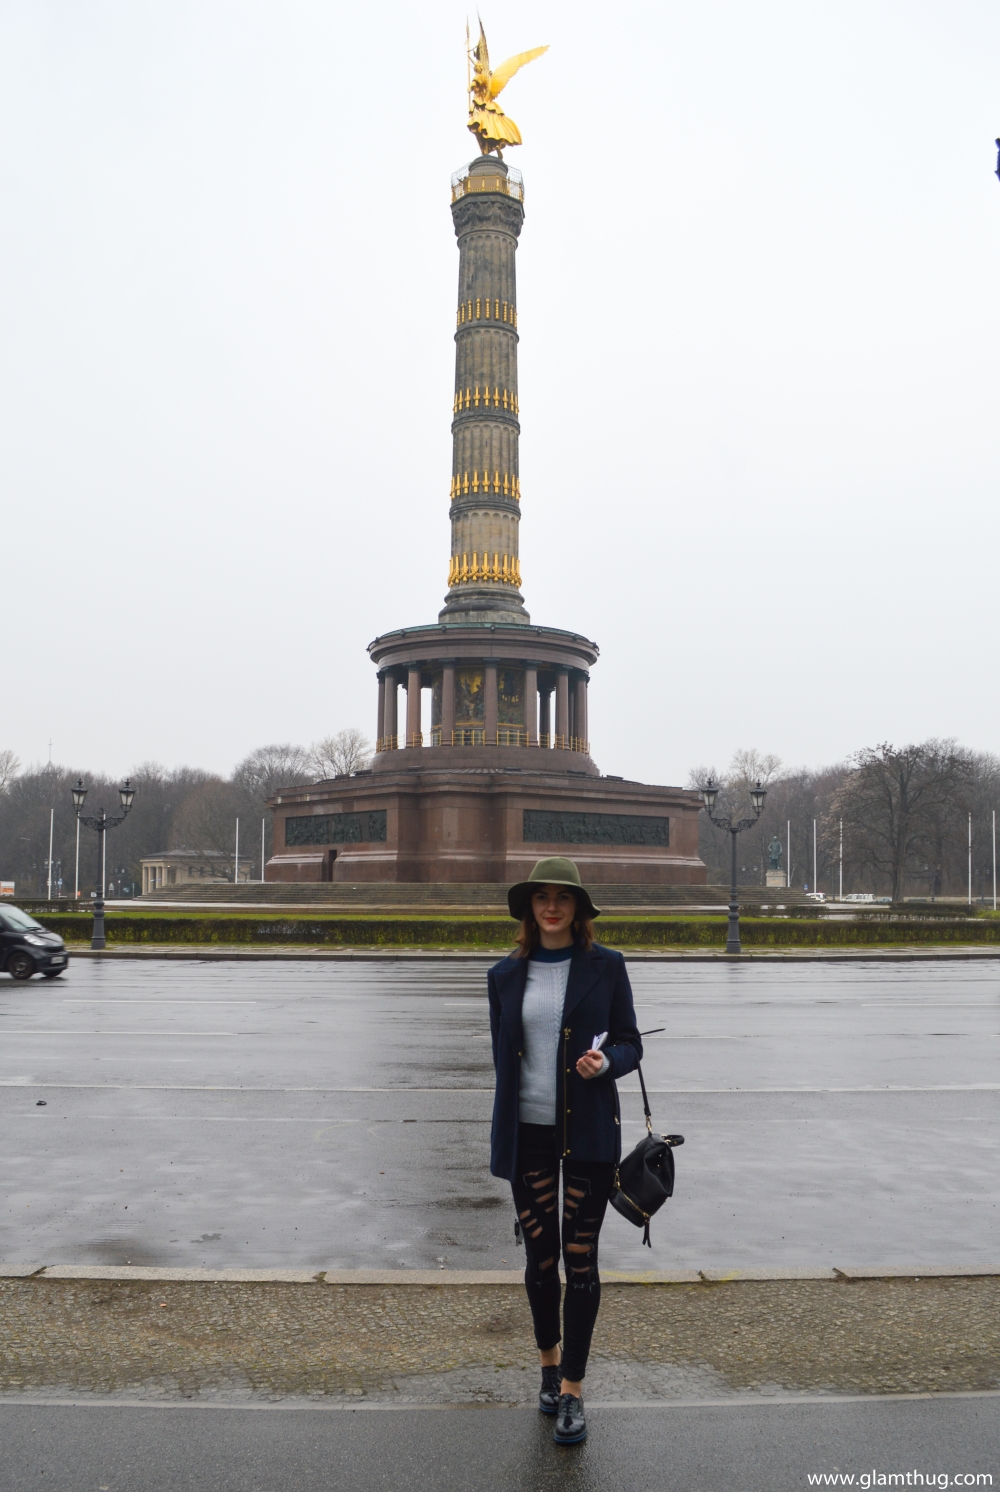 hotel park plaza berlin, ,lifestyle blogger,glamthug blog,student in denmark,the life of a student abroad,photos with nikon d3200,hotel ku'damm,what to visit in berlin,where to stay in berlin blog,